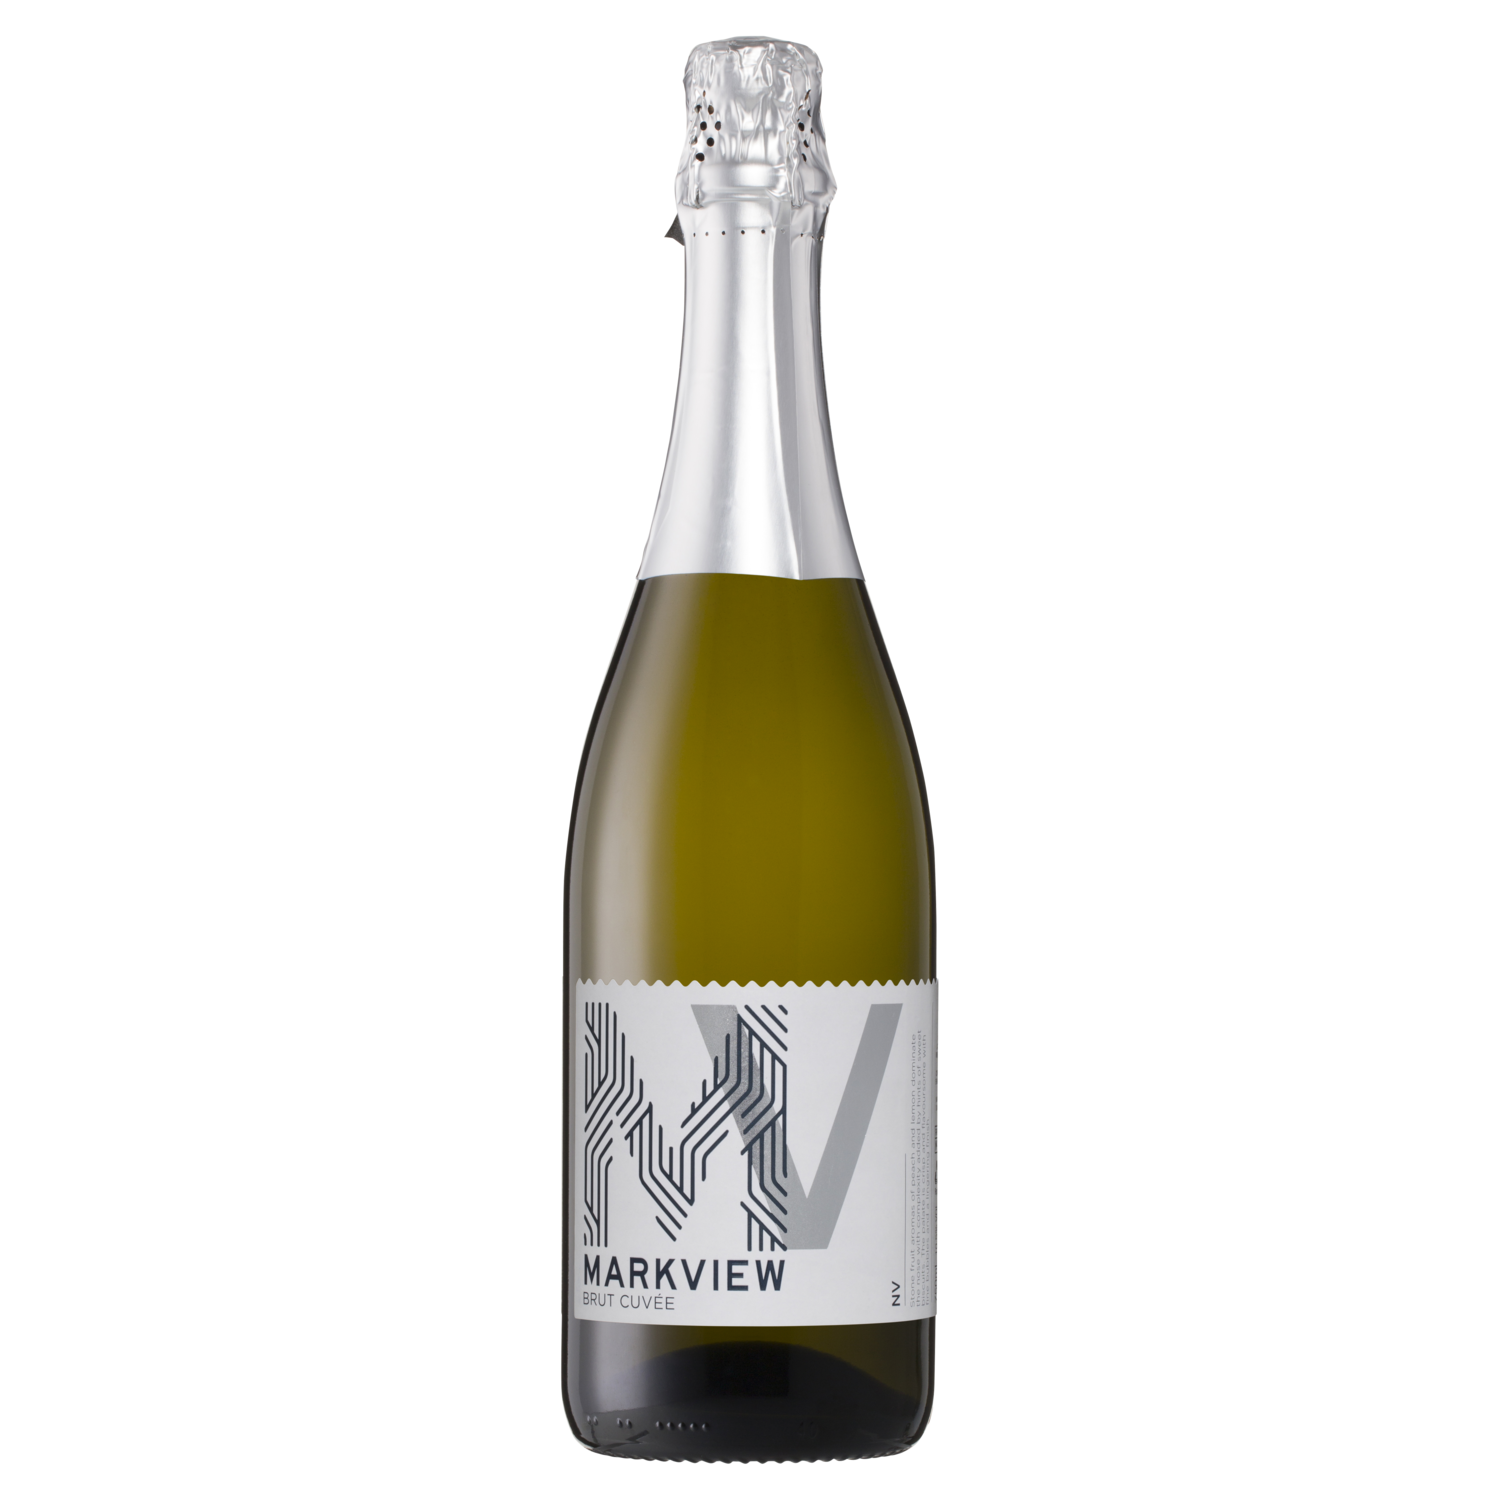 McWilliam's Markview Brut Cuvée